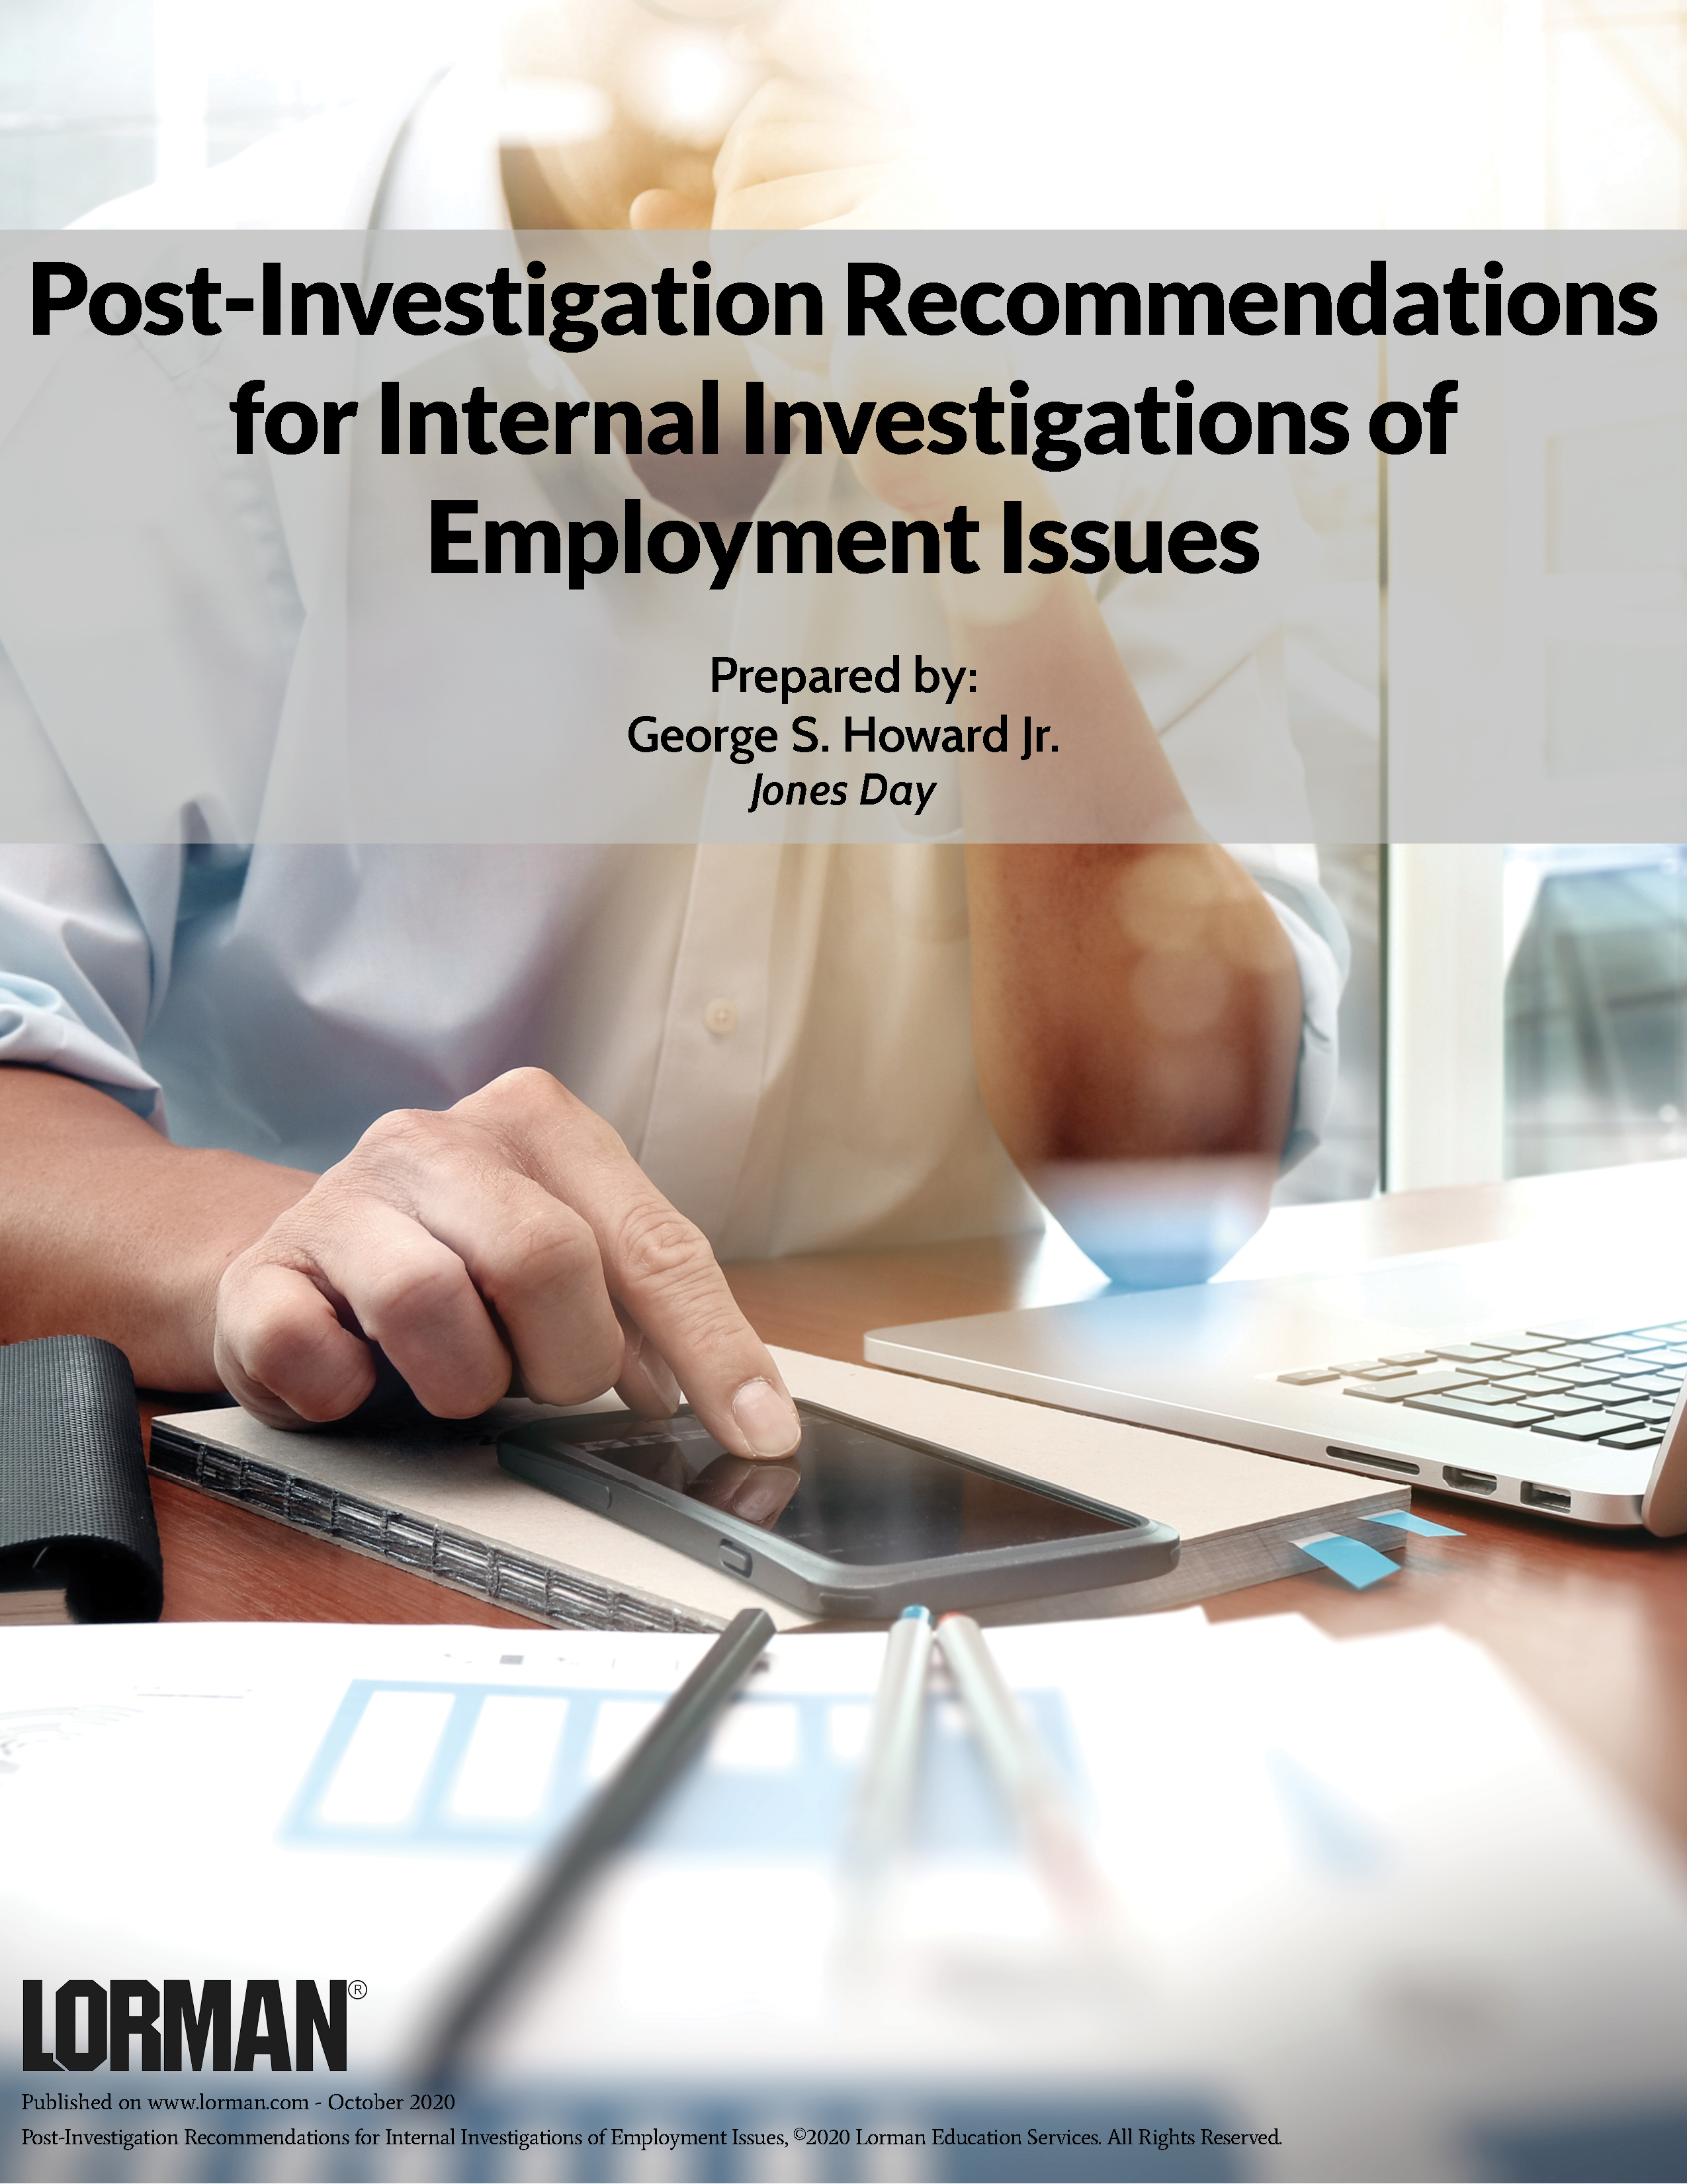 Post-Investigation Recommendations for Internal Investigations of Employment Issues